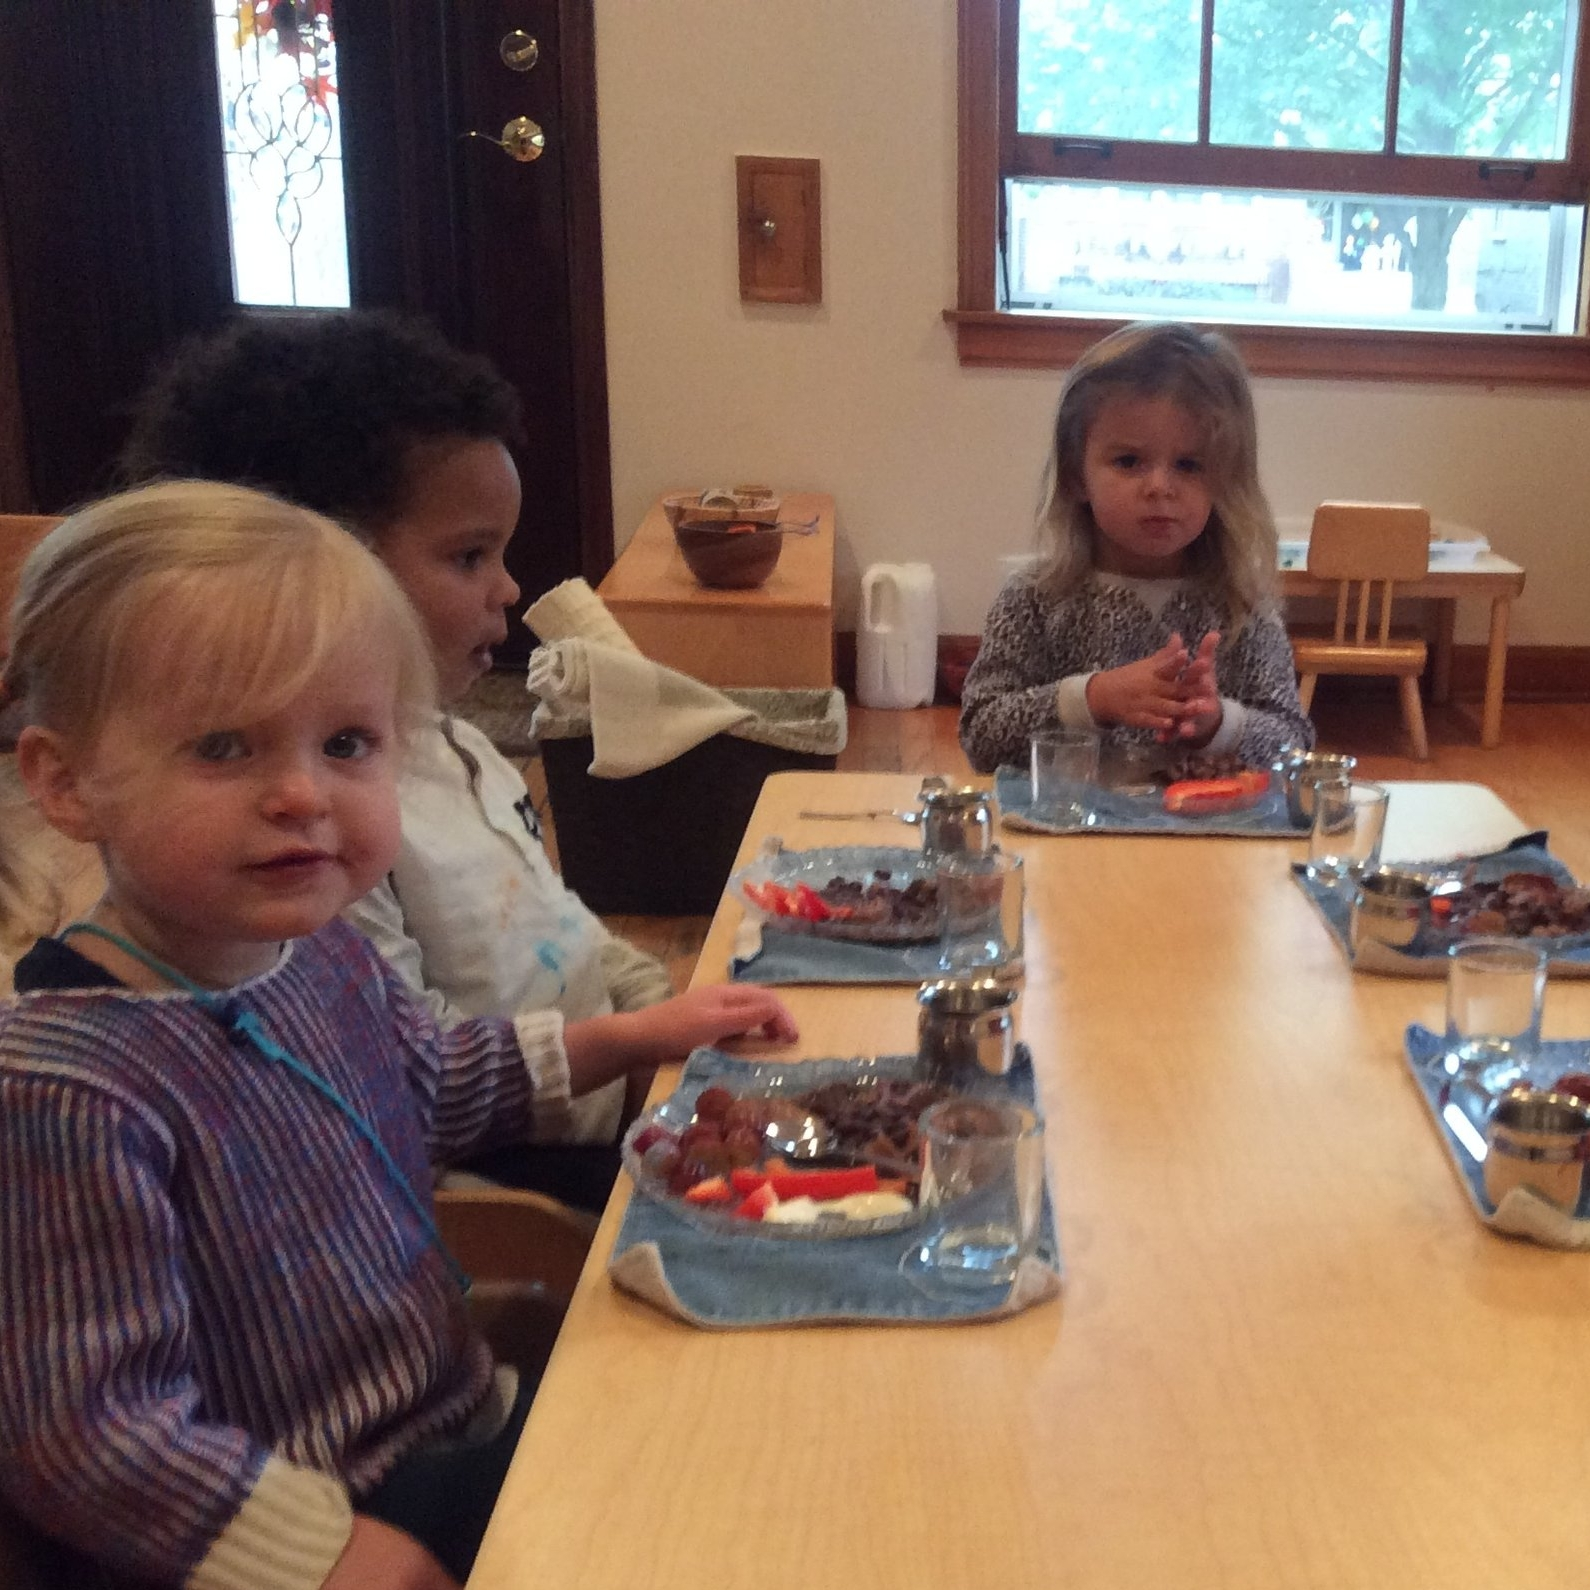 Children in both toddler and primary classrooms eat their meals at the table with a full table setting.